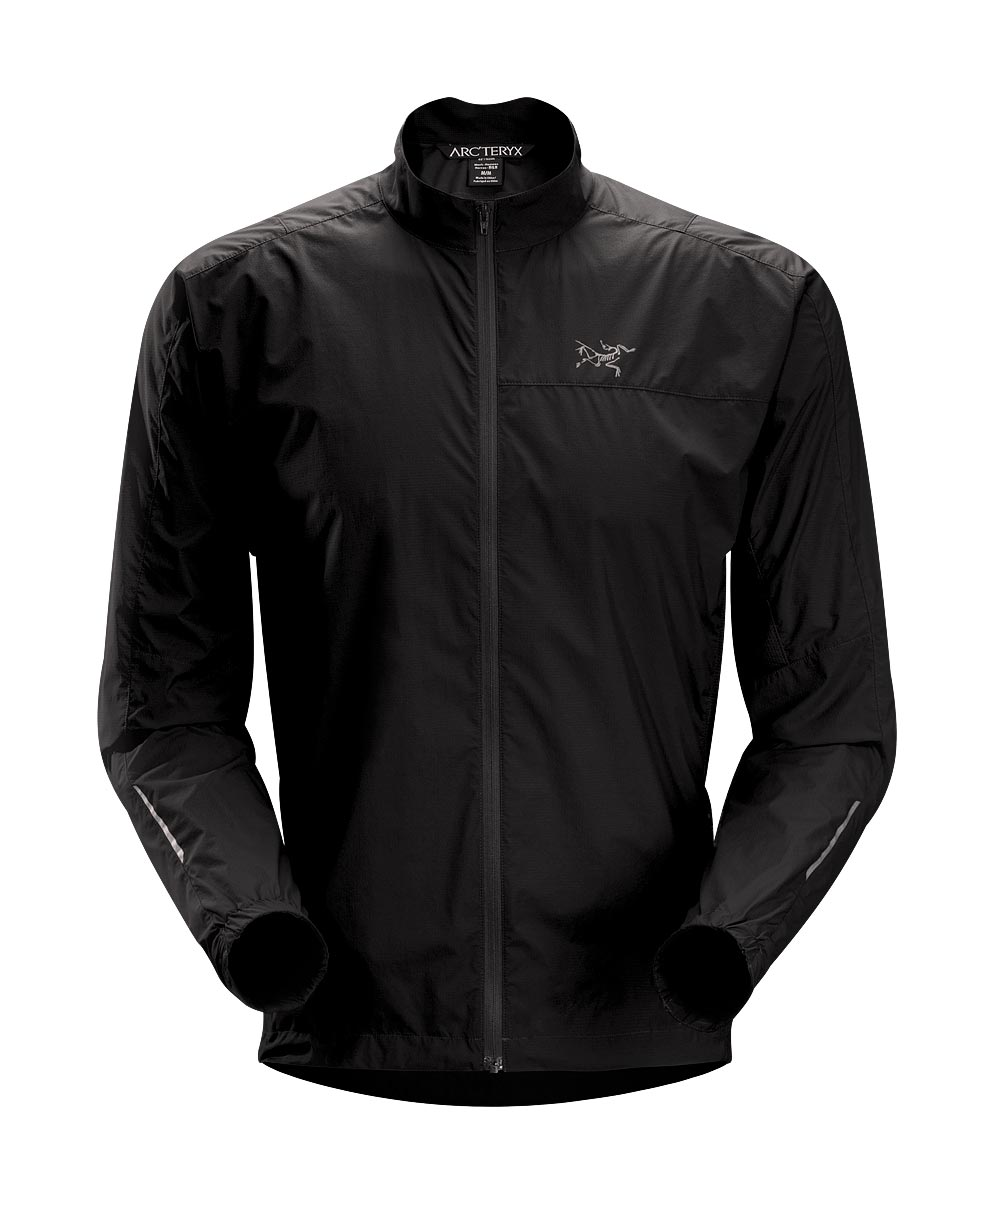 Arcteryx Blac kIncendo Jacket - New